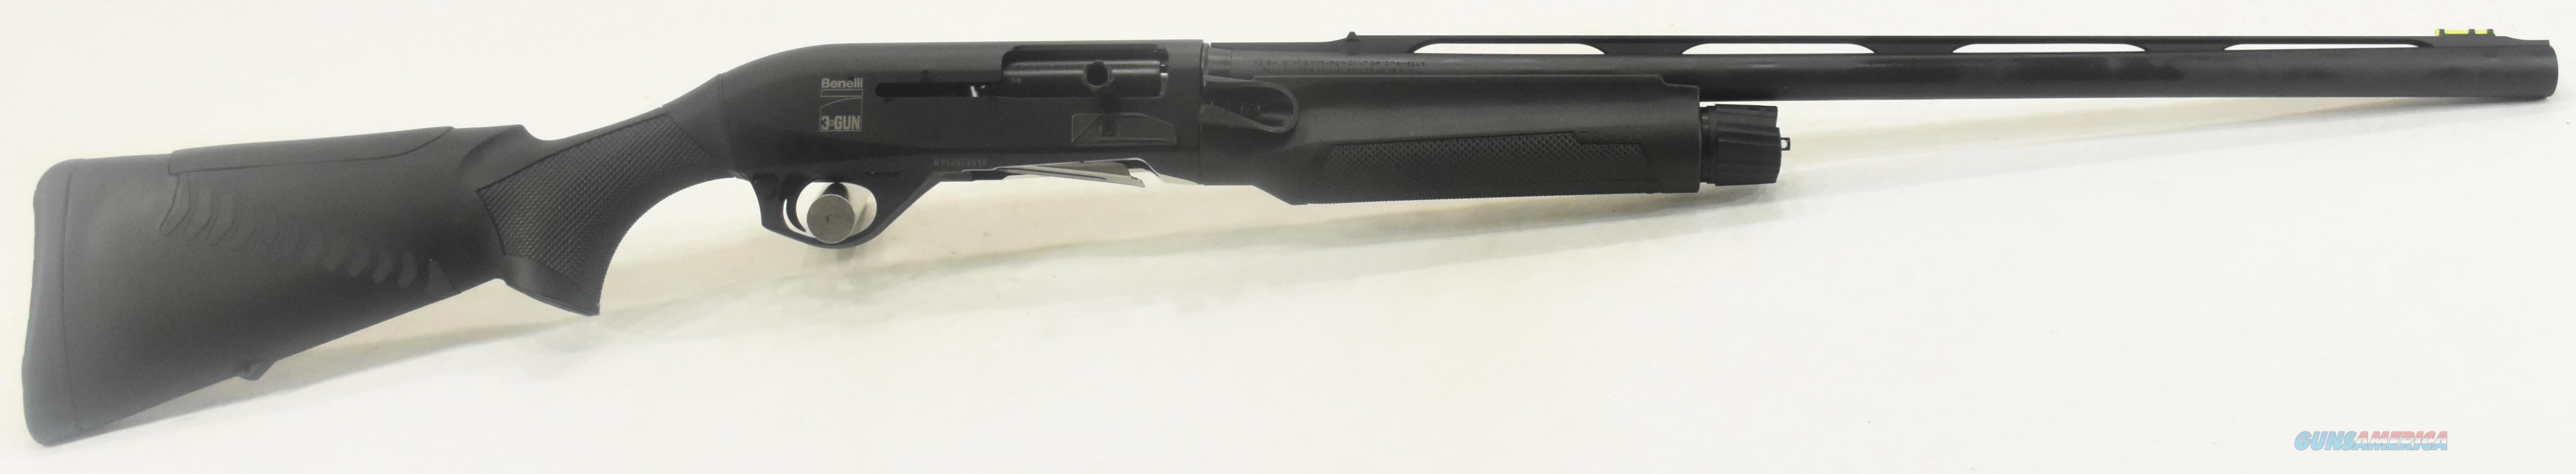 11022 Benelli M2 Performance Shop 3 Gun 12 Ga 24In  Guns > Shotguns > Benelli Shotguns > Sporting